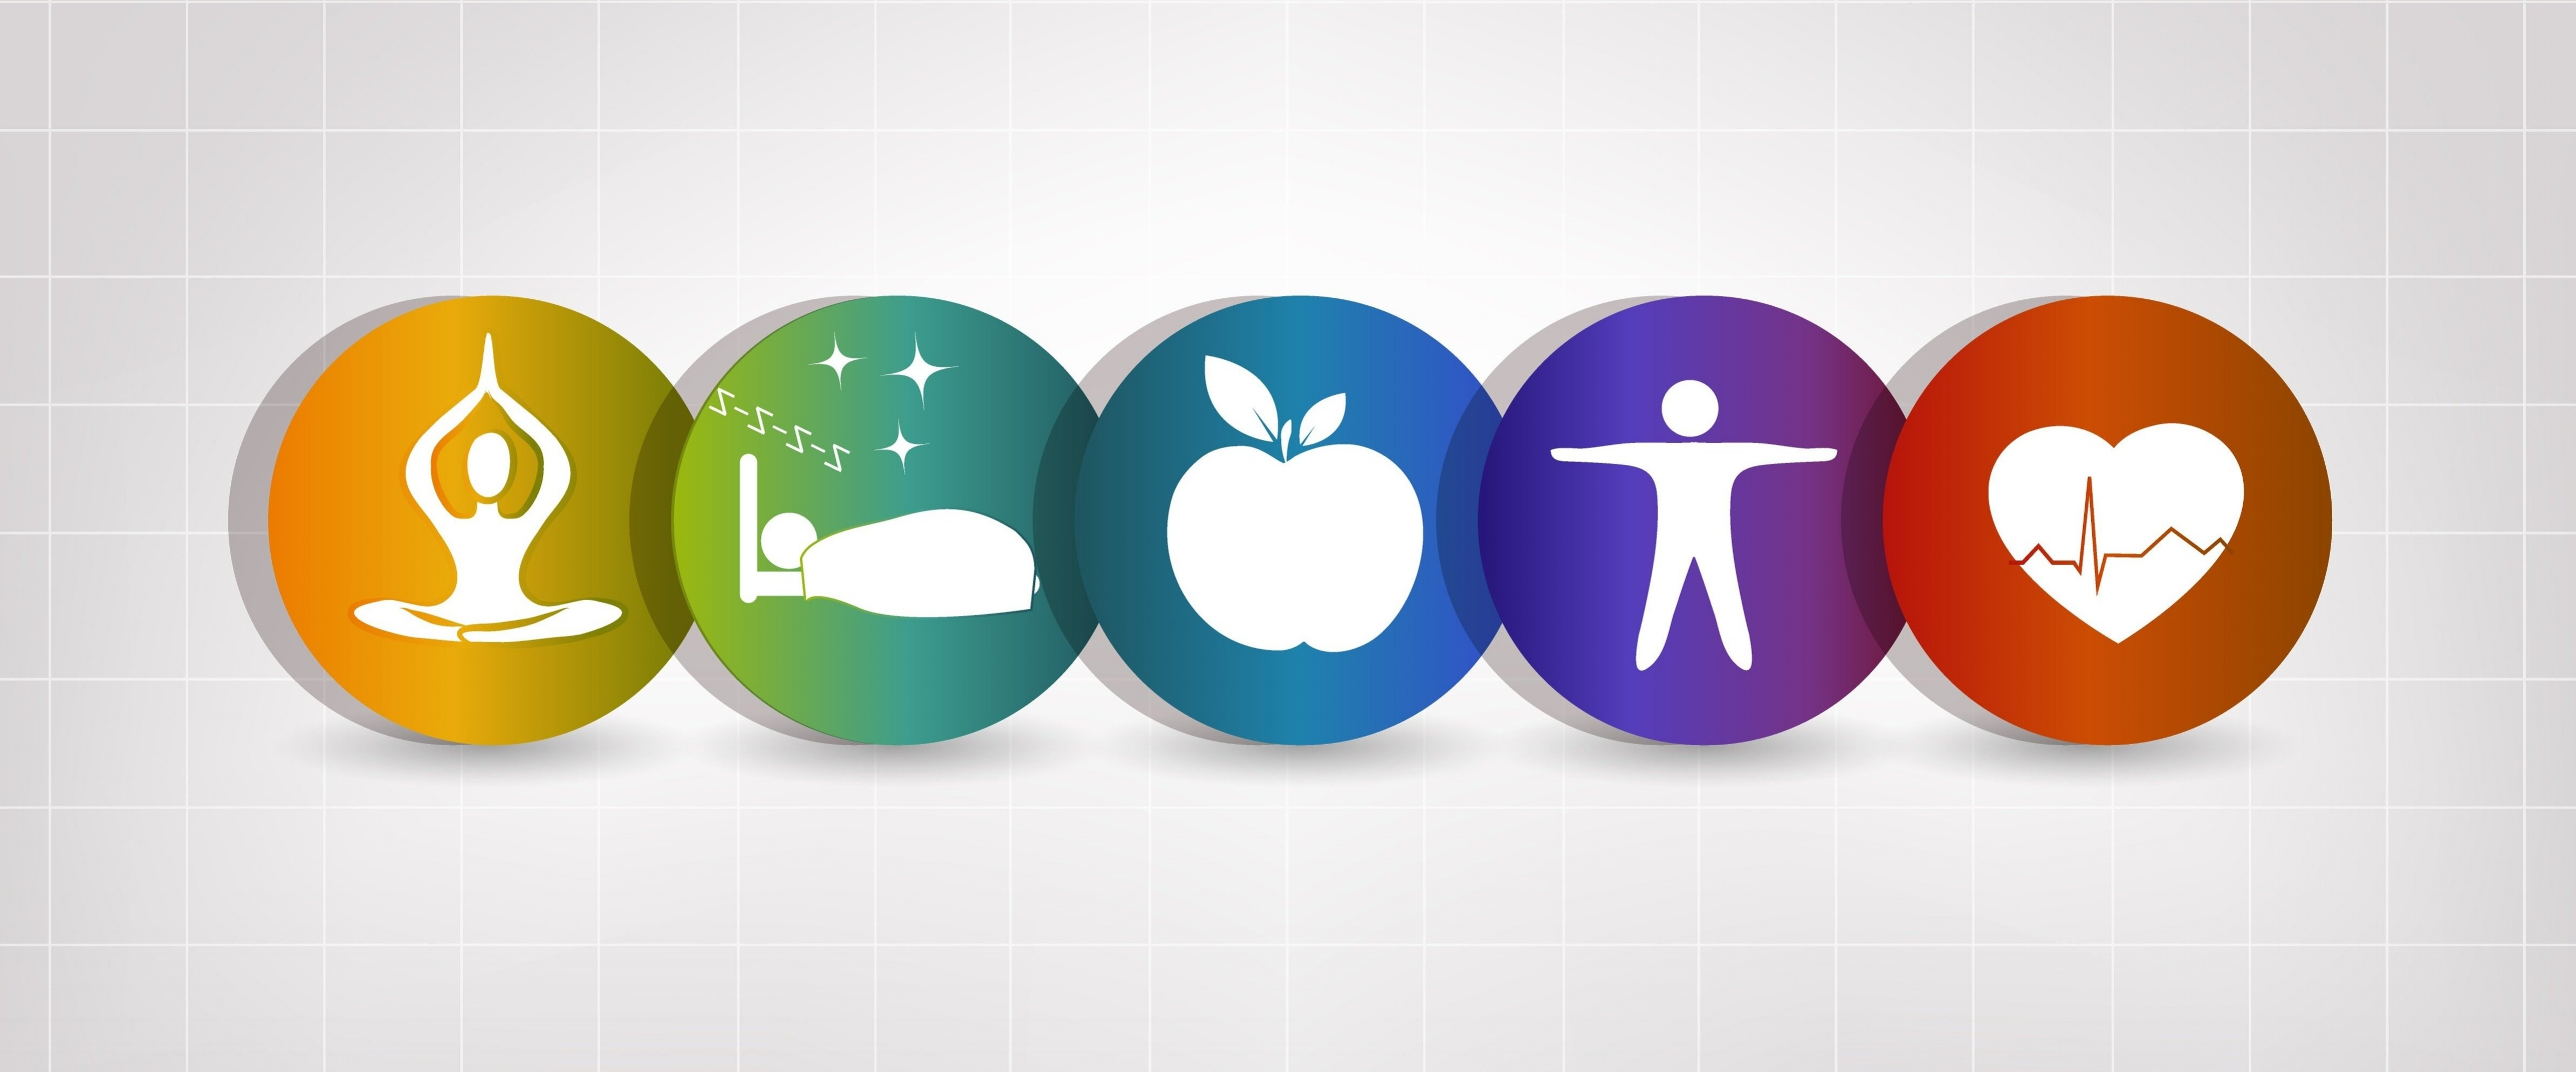 healthy-living-icons-2.jpg